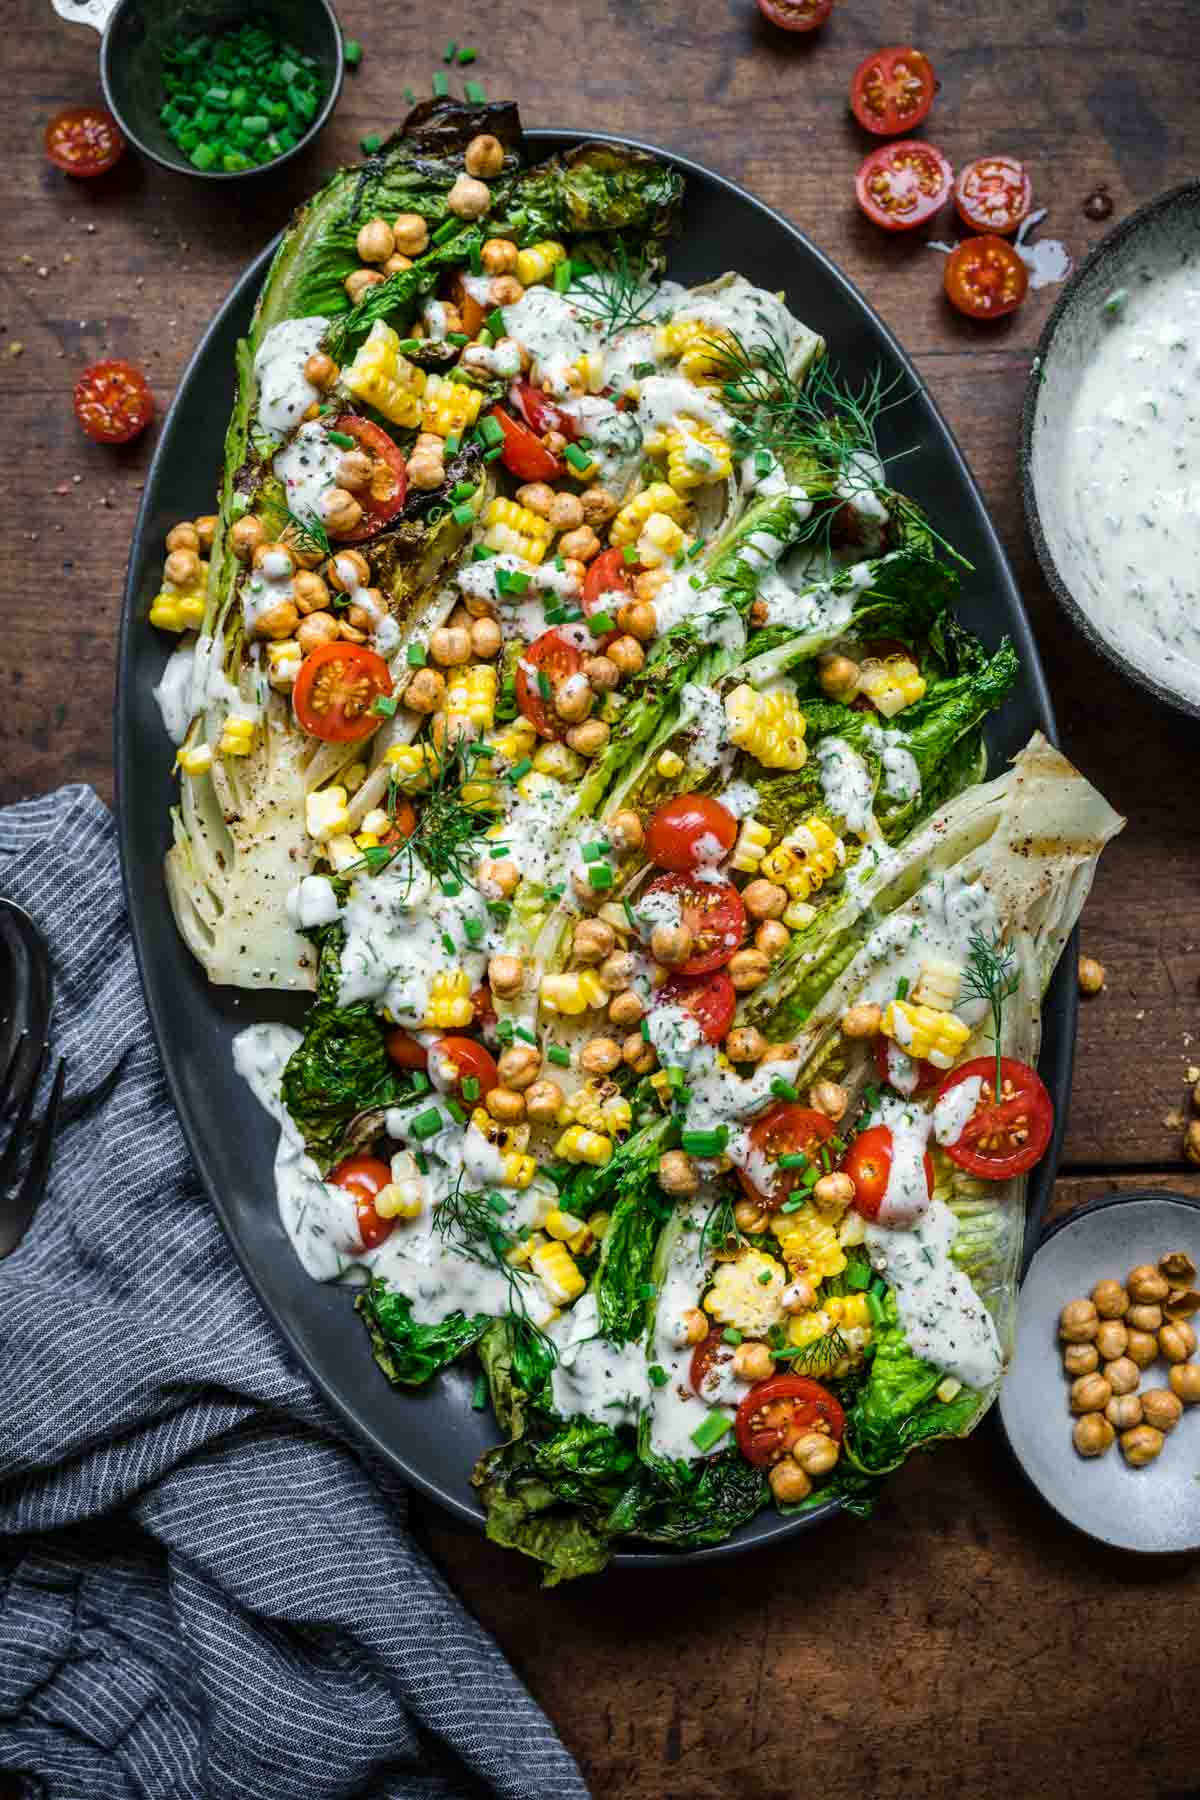 Overhead view of 4 heads of grilled romaine with crispy chickpeas, corn, tomatoes, and vegan ranch.